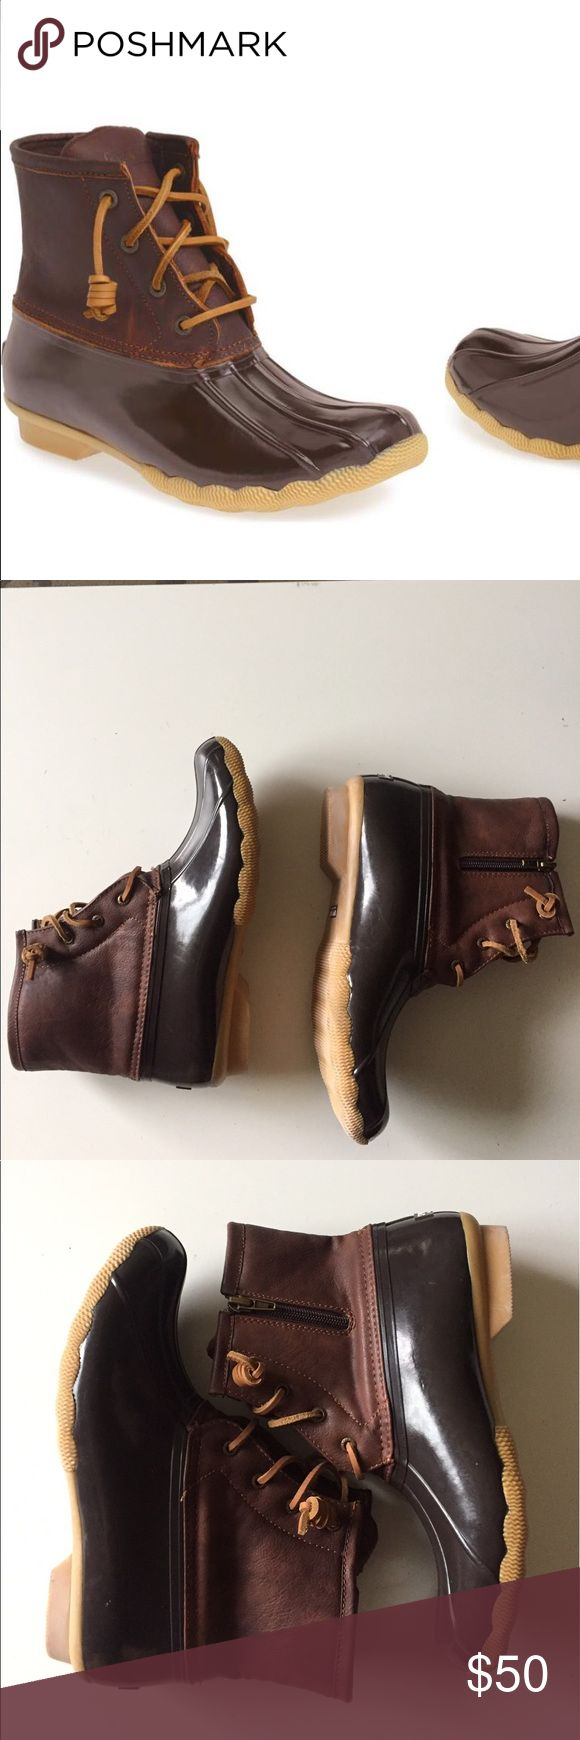 Sperry saltwater duck boots NWOT size 6 Sperry duck boots color brown new condition .Has some white spots as seen on the last picture Sperry Shoes Winter & Rain Boots